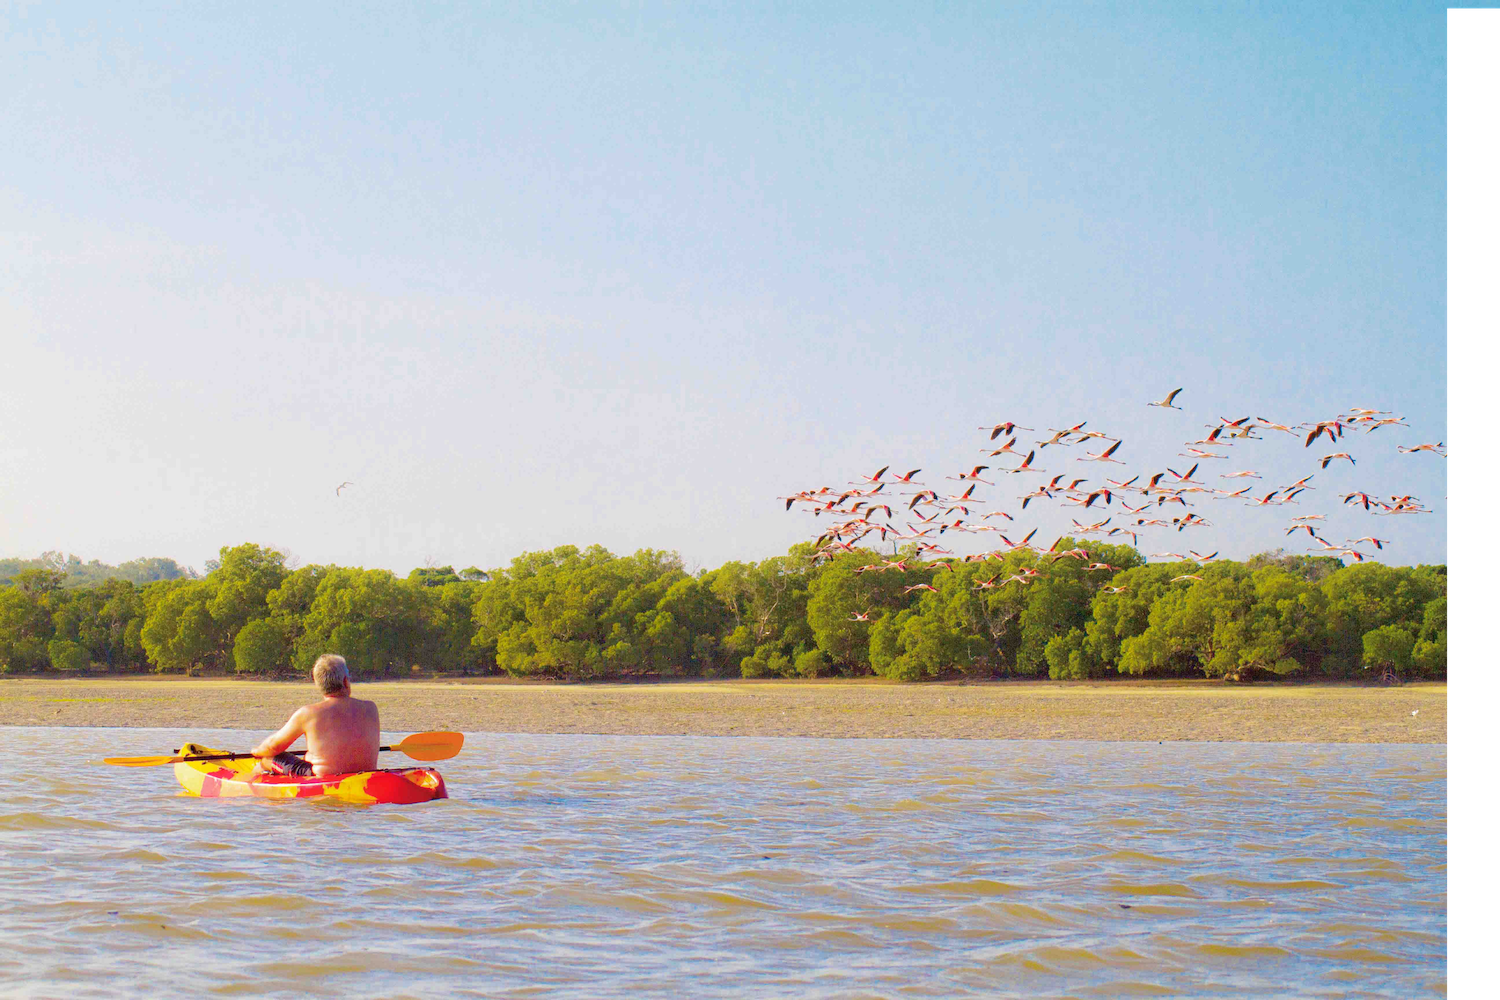 A flock of flamingos starting during low tide.